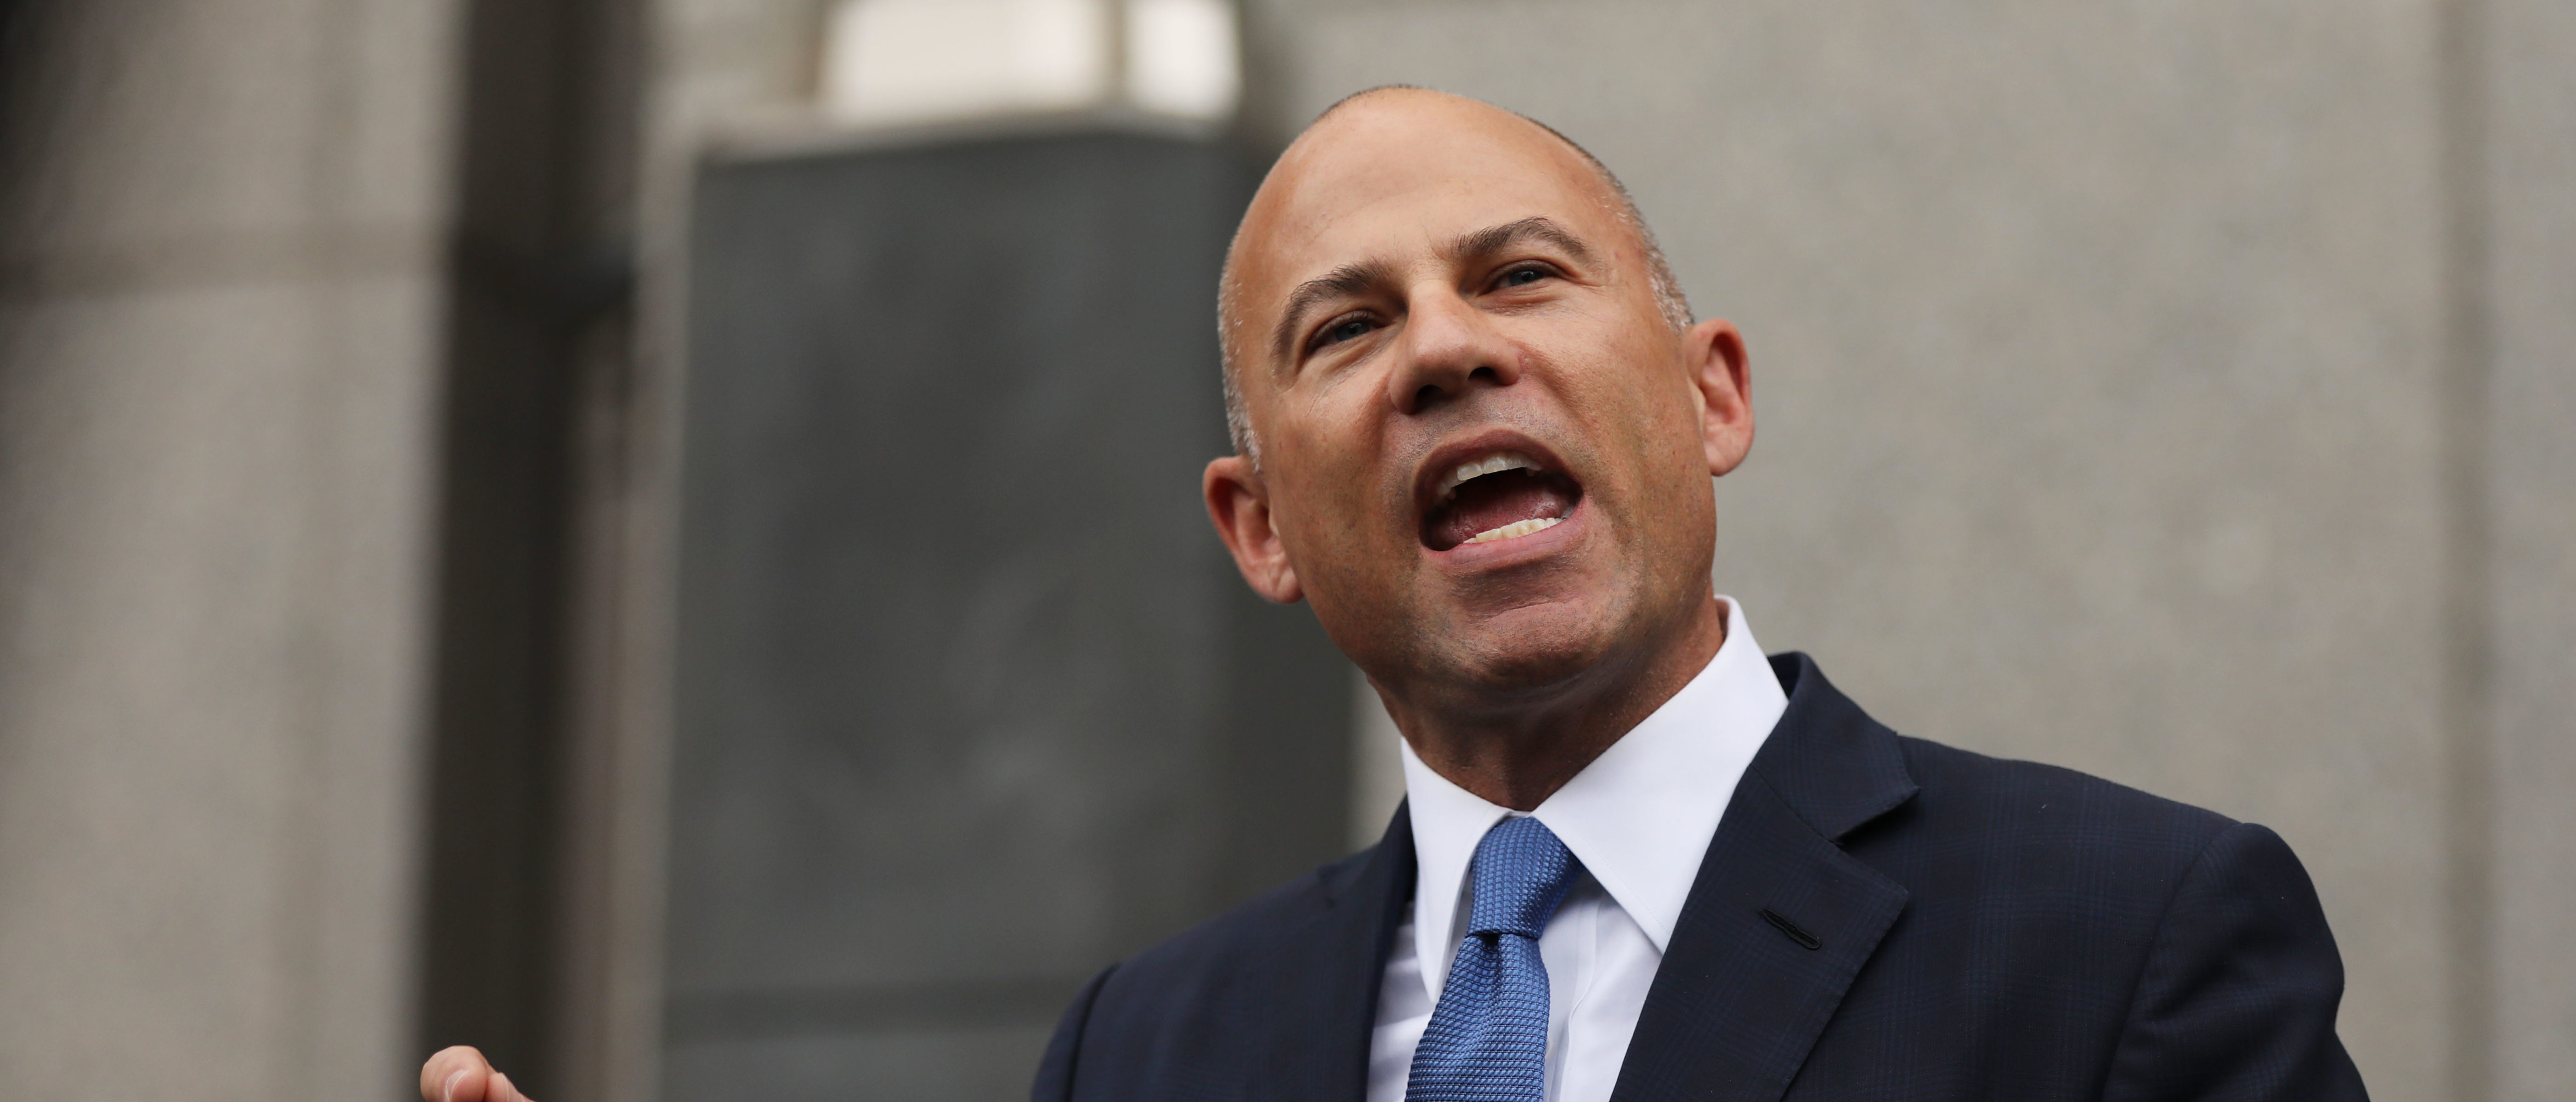 Media Struggles To Confront Their Failures In Covering Michael Avenatti